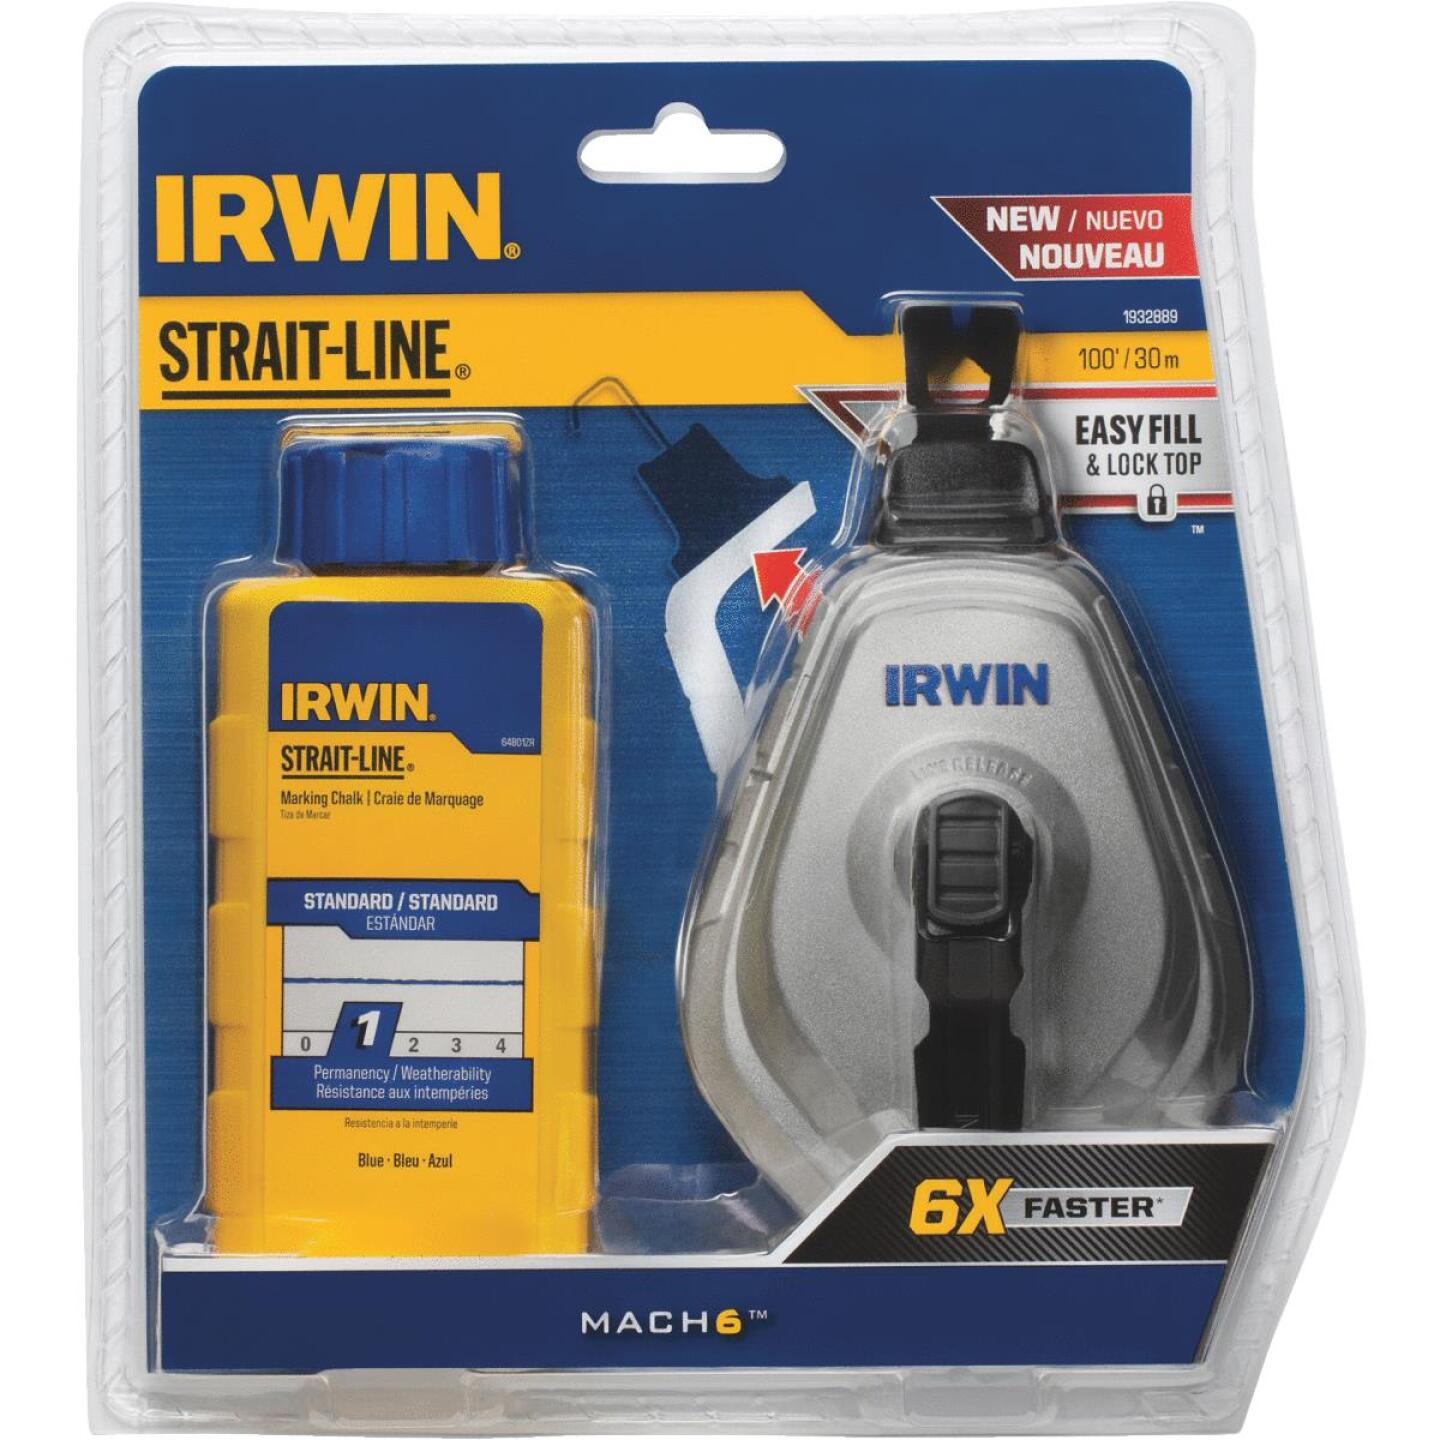 Irwin STRAIT-LINE Mach6 100 Ft. Chalk Line Reel and Chalk, Blue Image 1